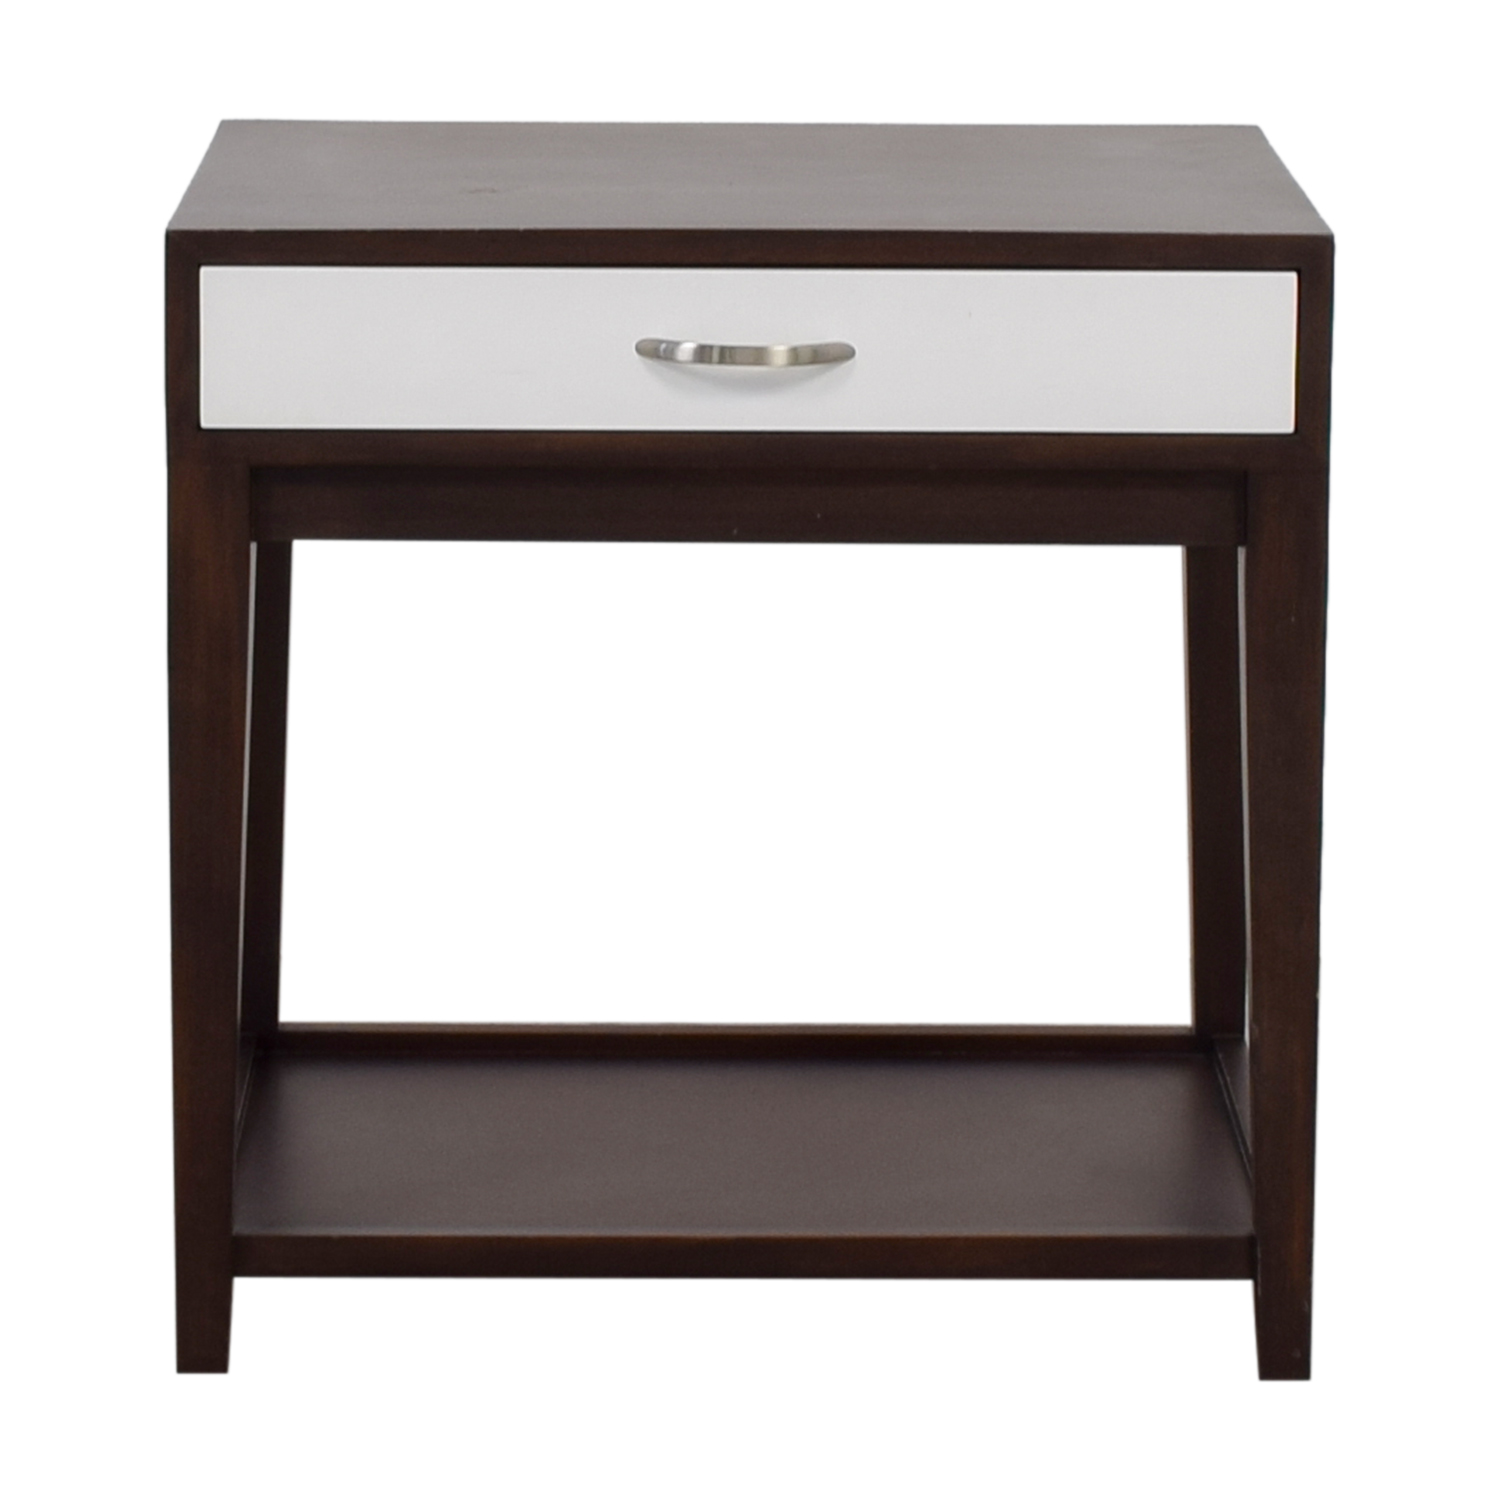 Buccola Buccola Brown and White Nightstand dimensions